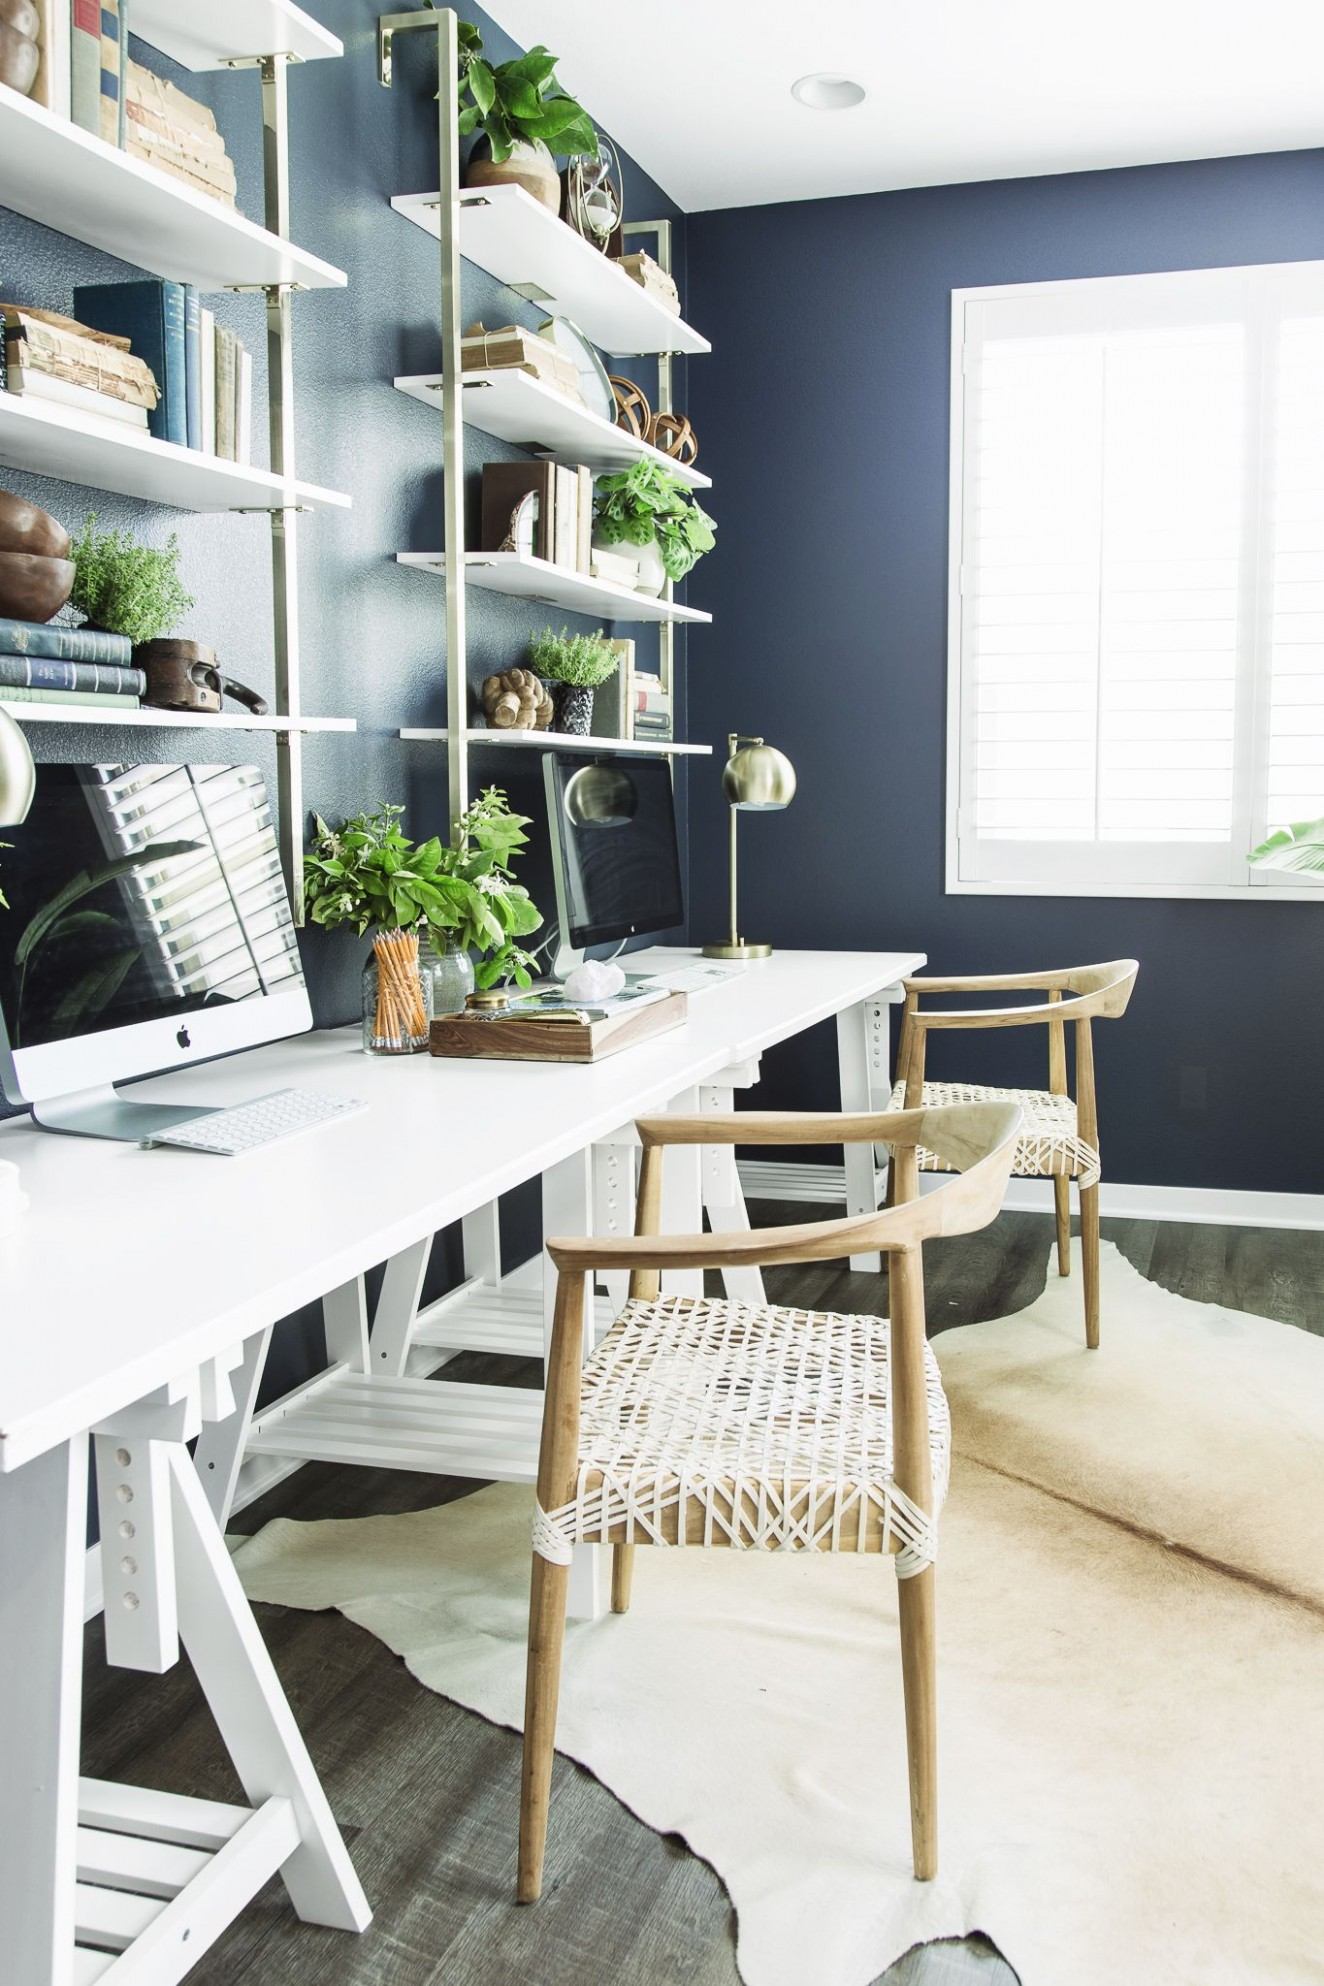 11 Best Home Office Ideas - How to Decorate a Home Office - Home Office Bookshelf Ideas